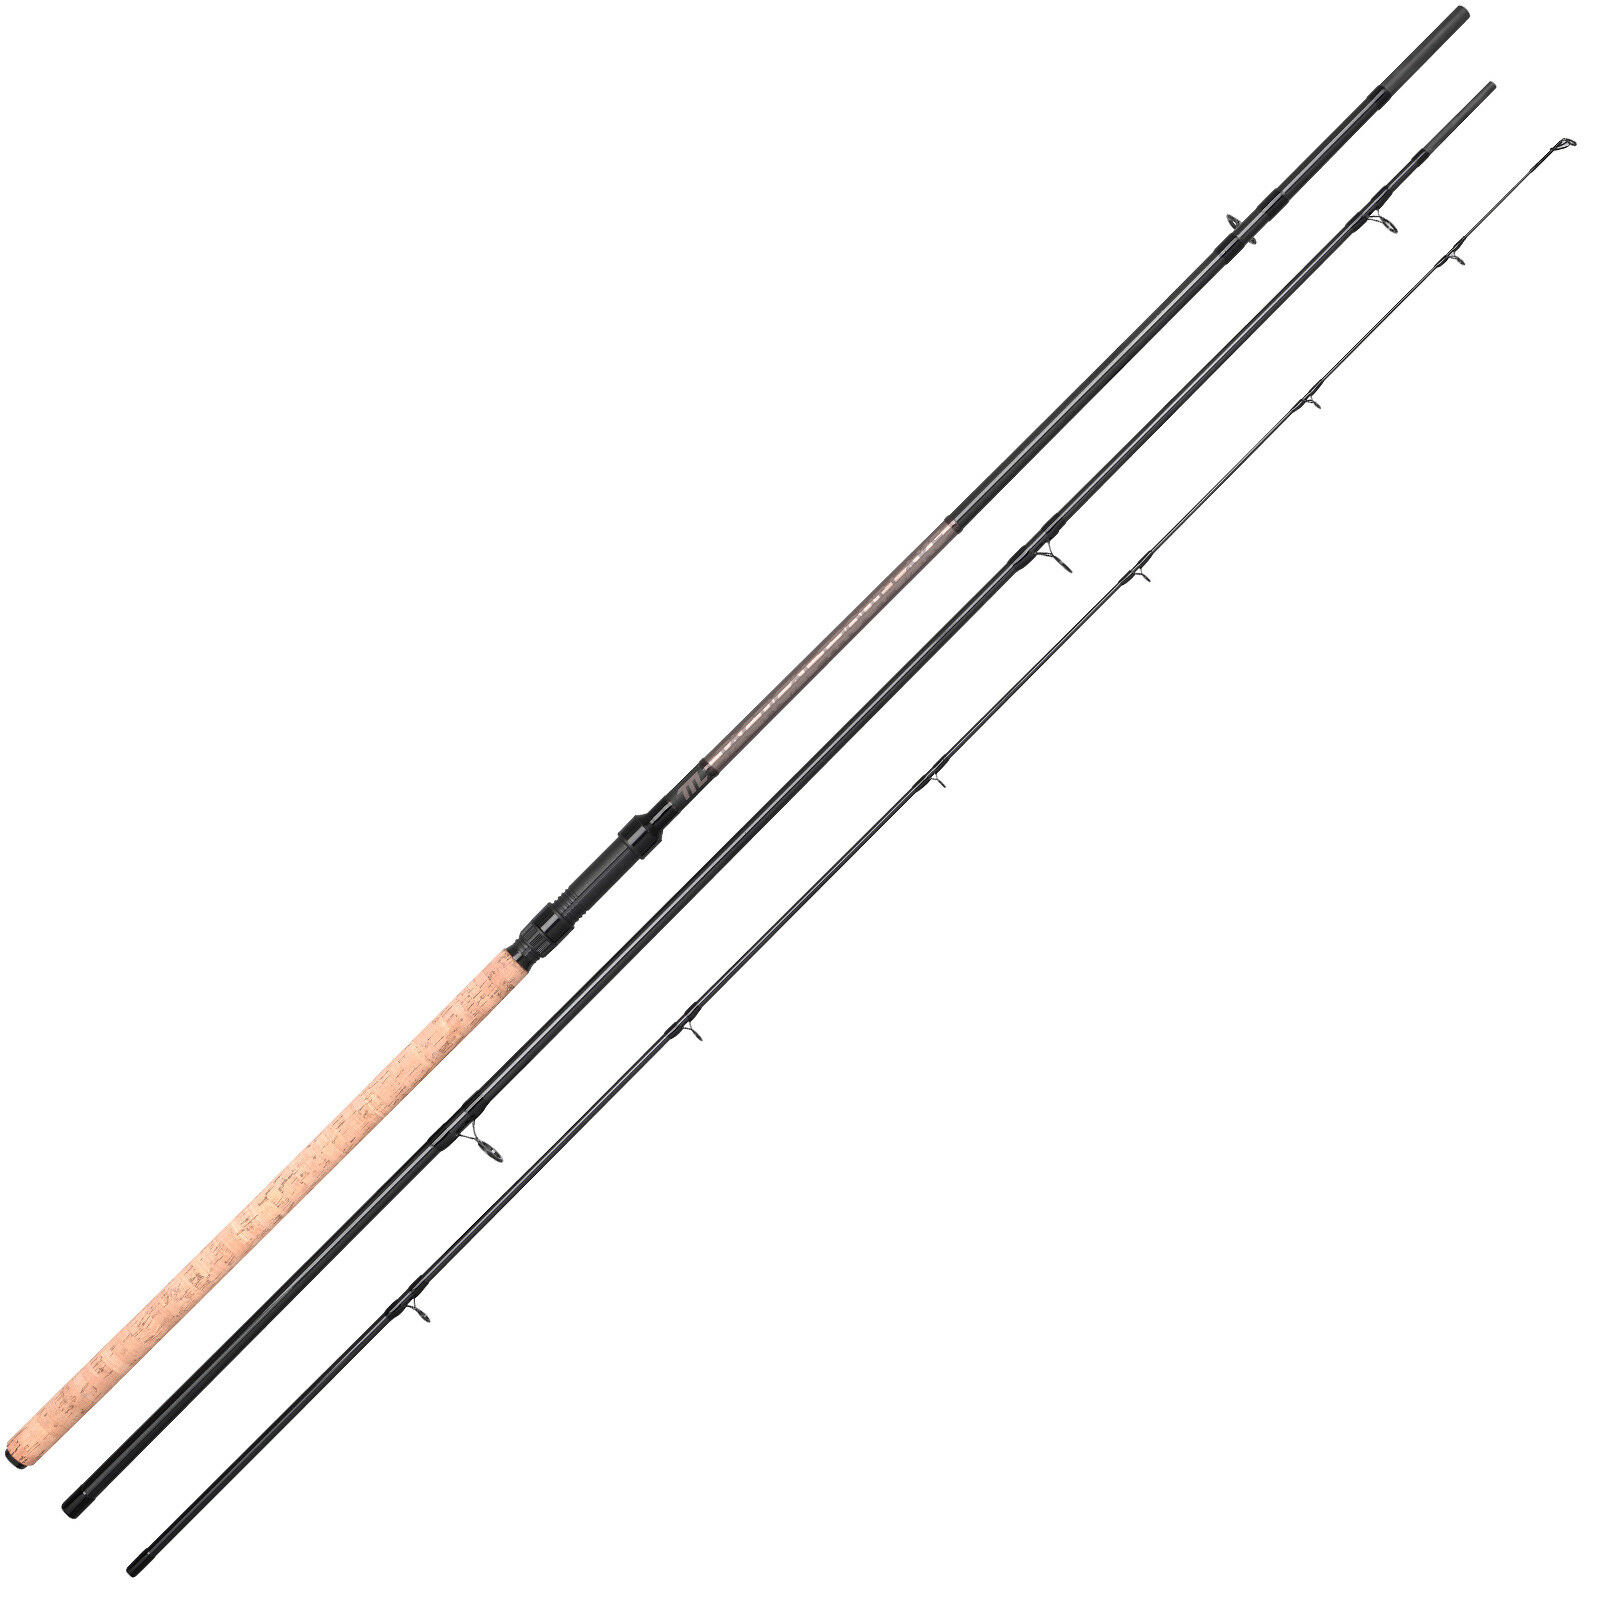 SPRO trossoe stadia LAGO CANNA PESCATactical Trout Lake 3,60m 540g